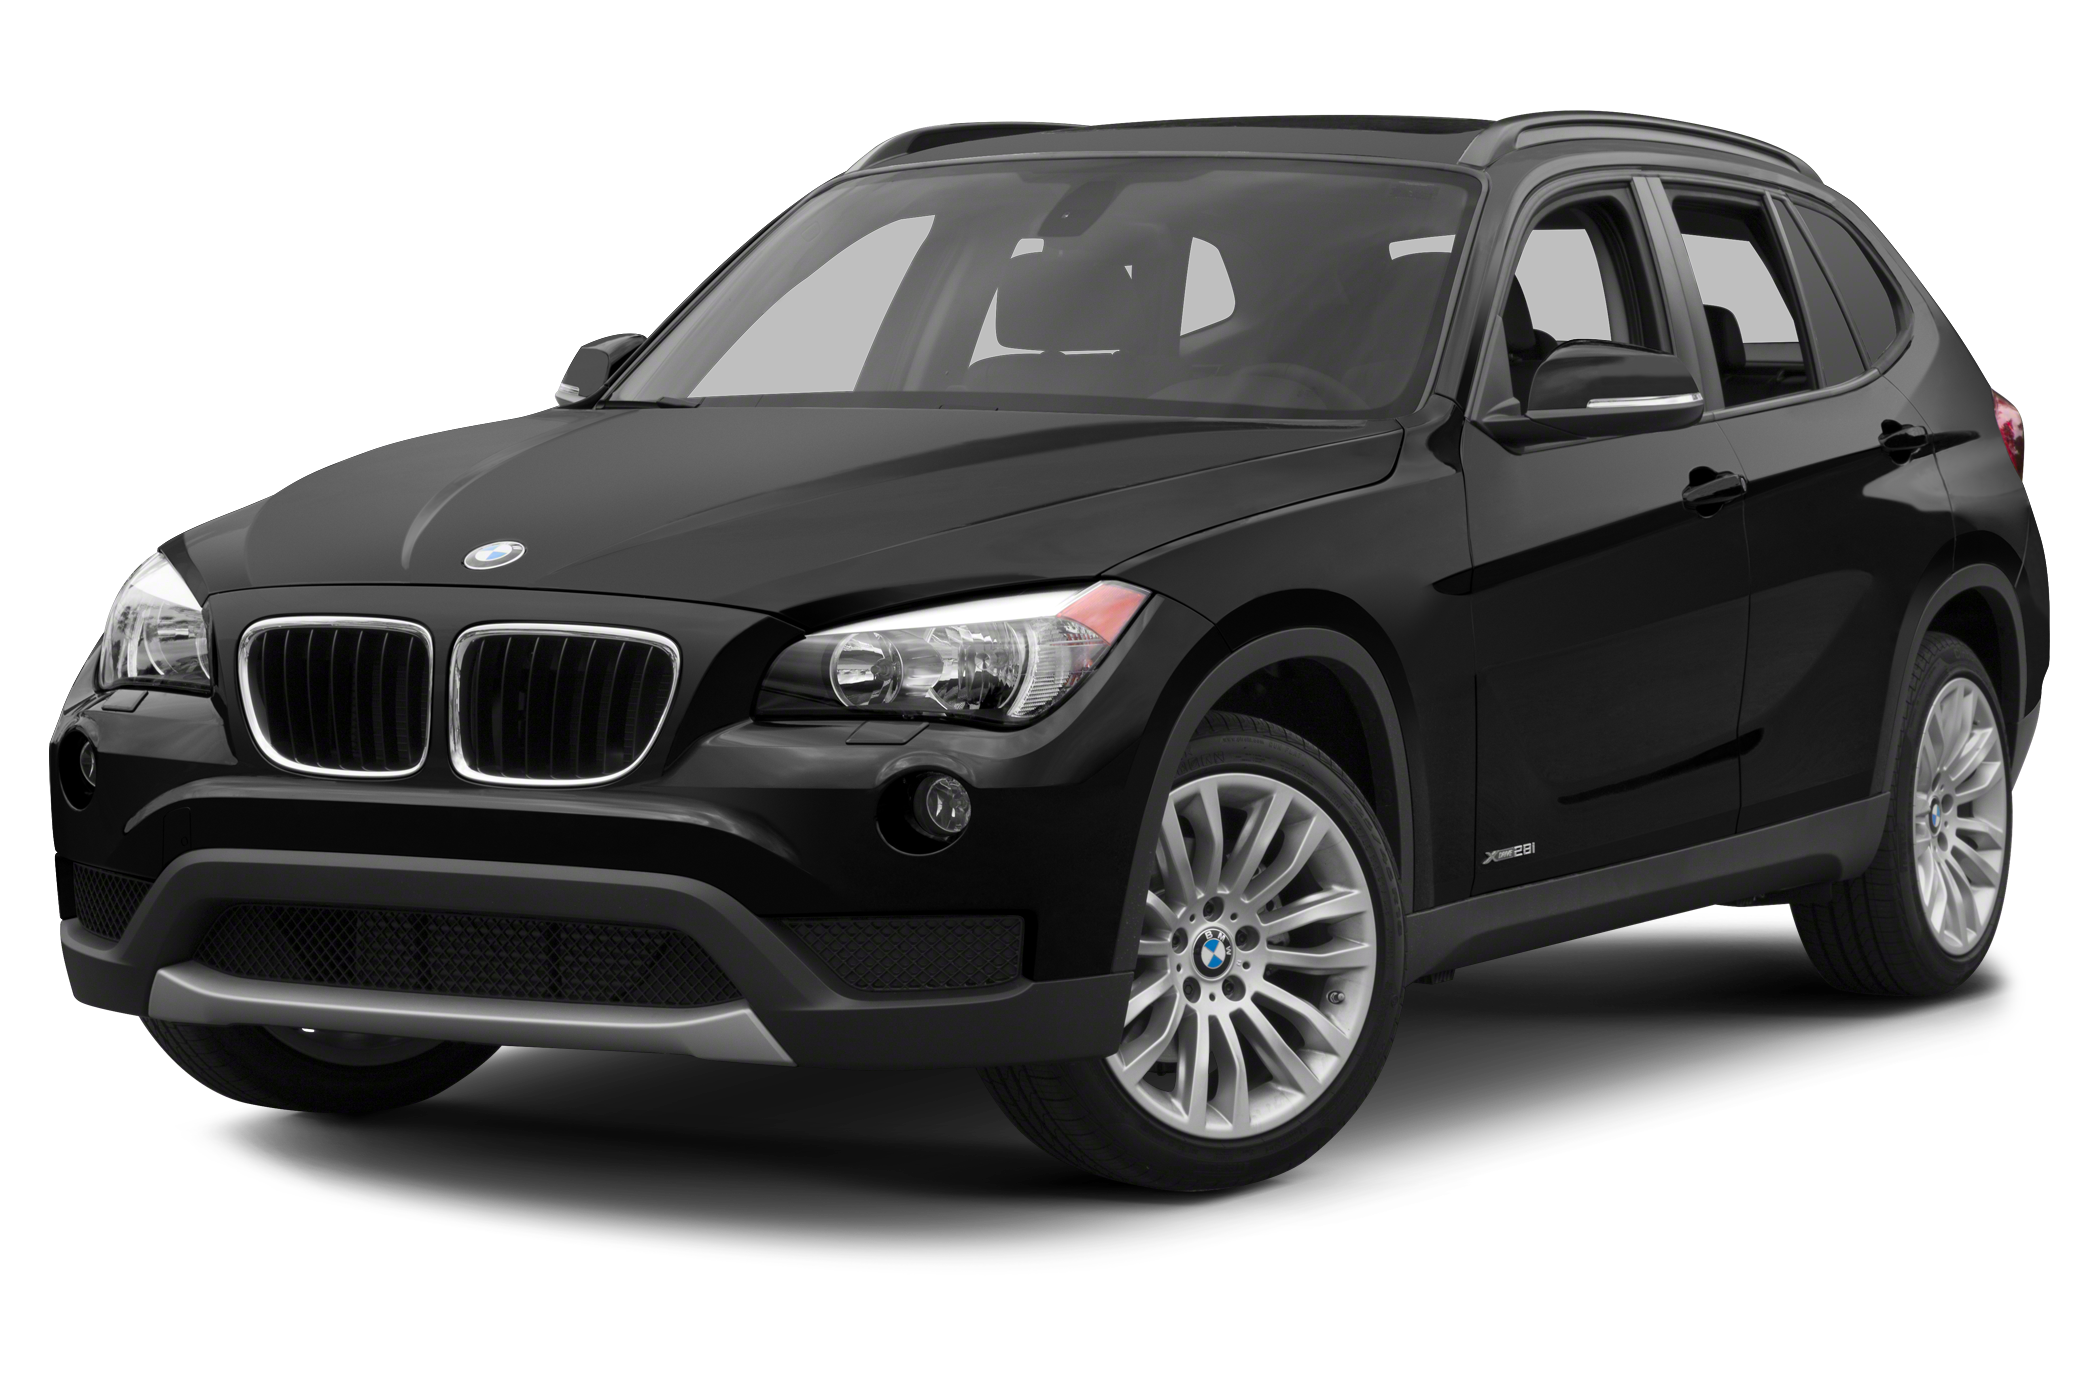 Bmw x5 2014 model price in pakistan 2017